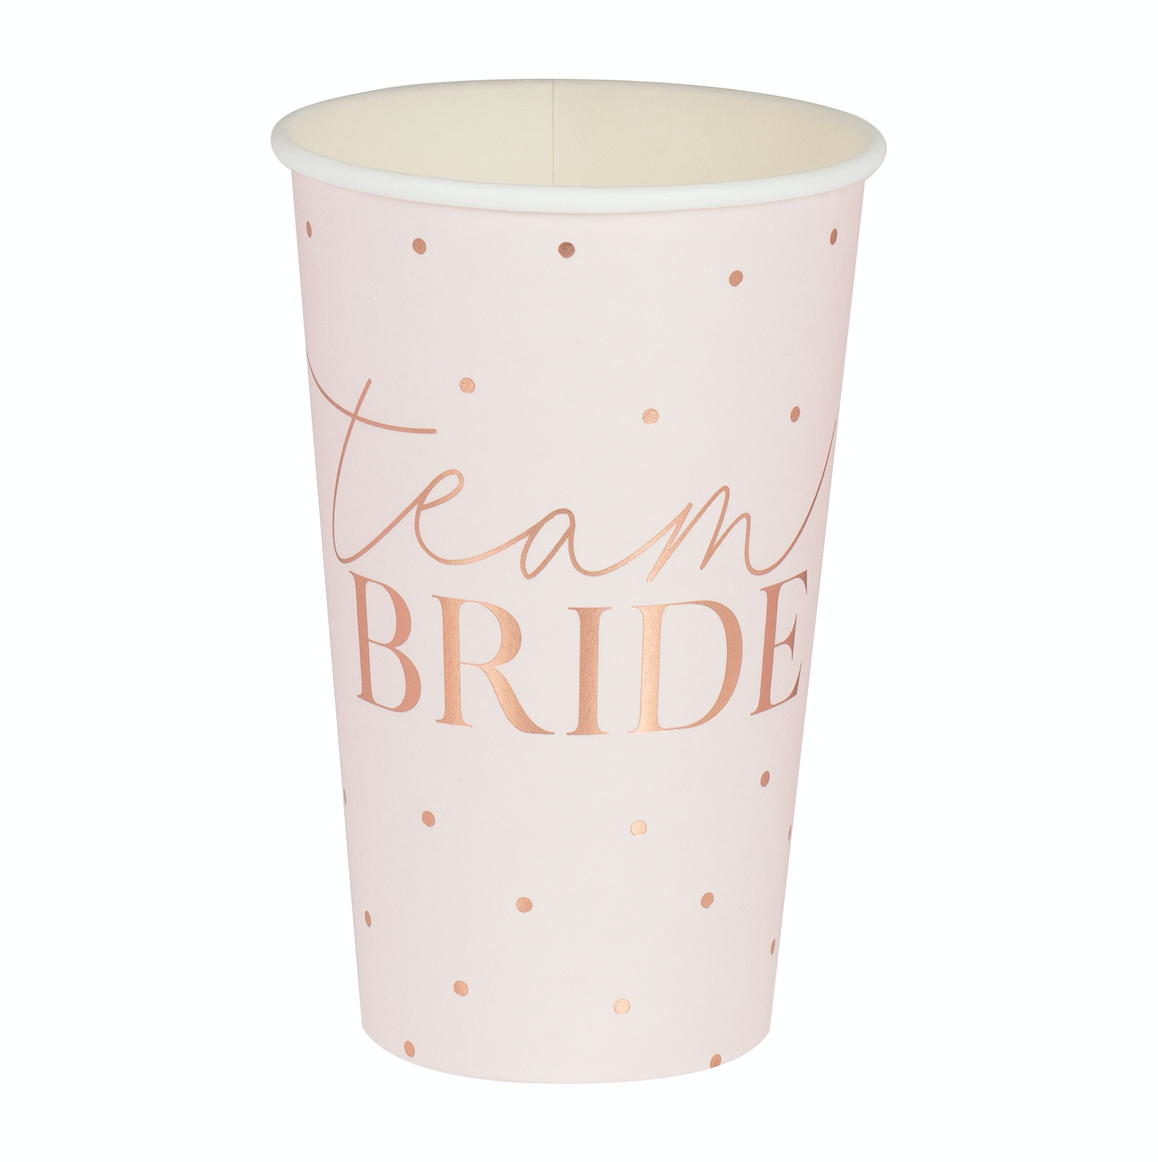 Rose Gold Team Bride Large Hen Party Cups